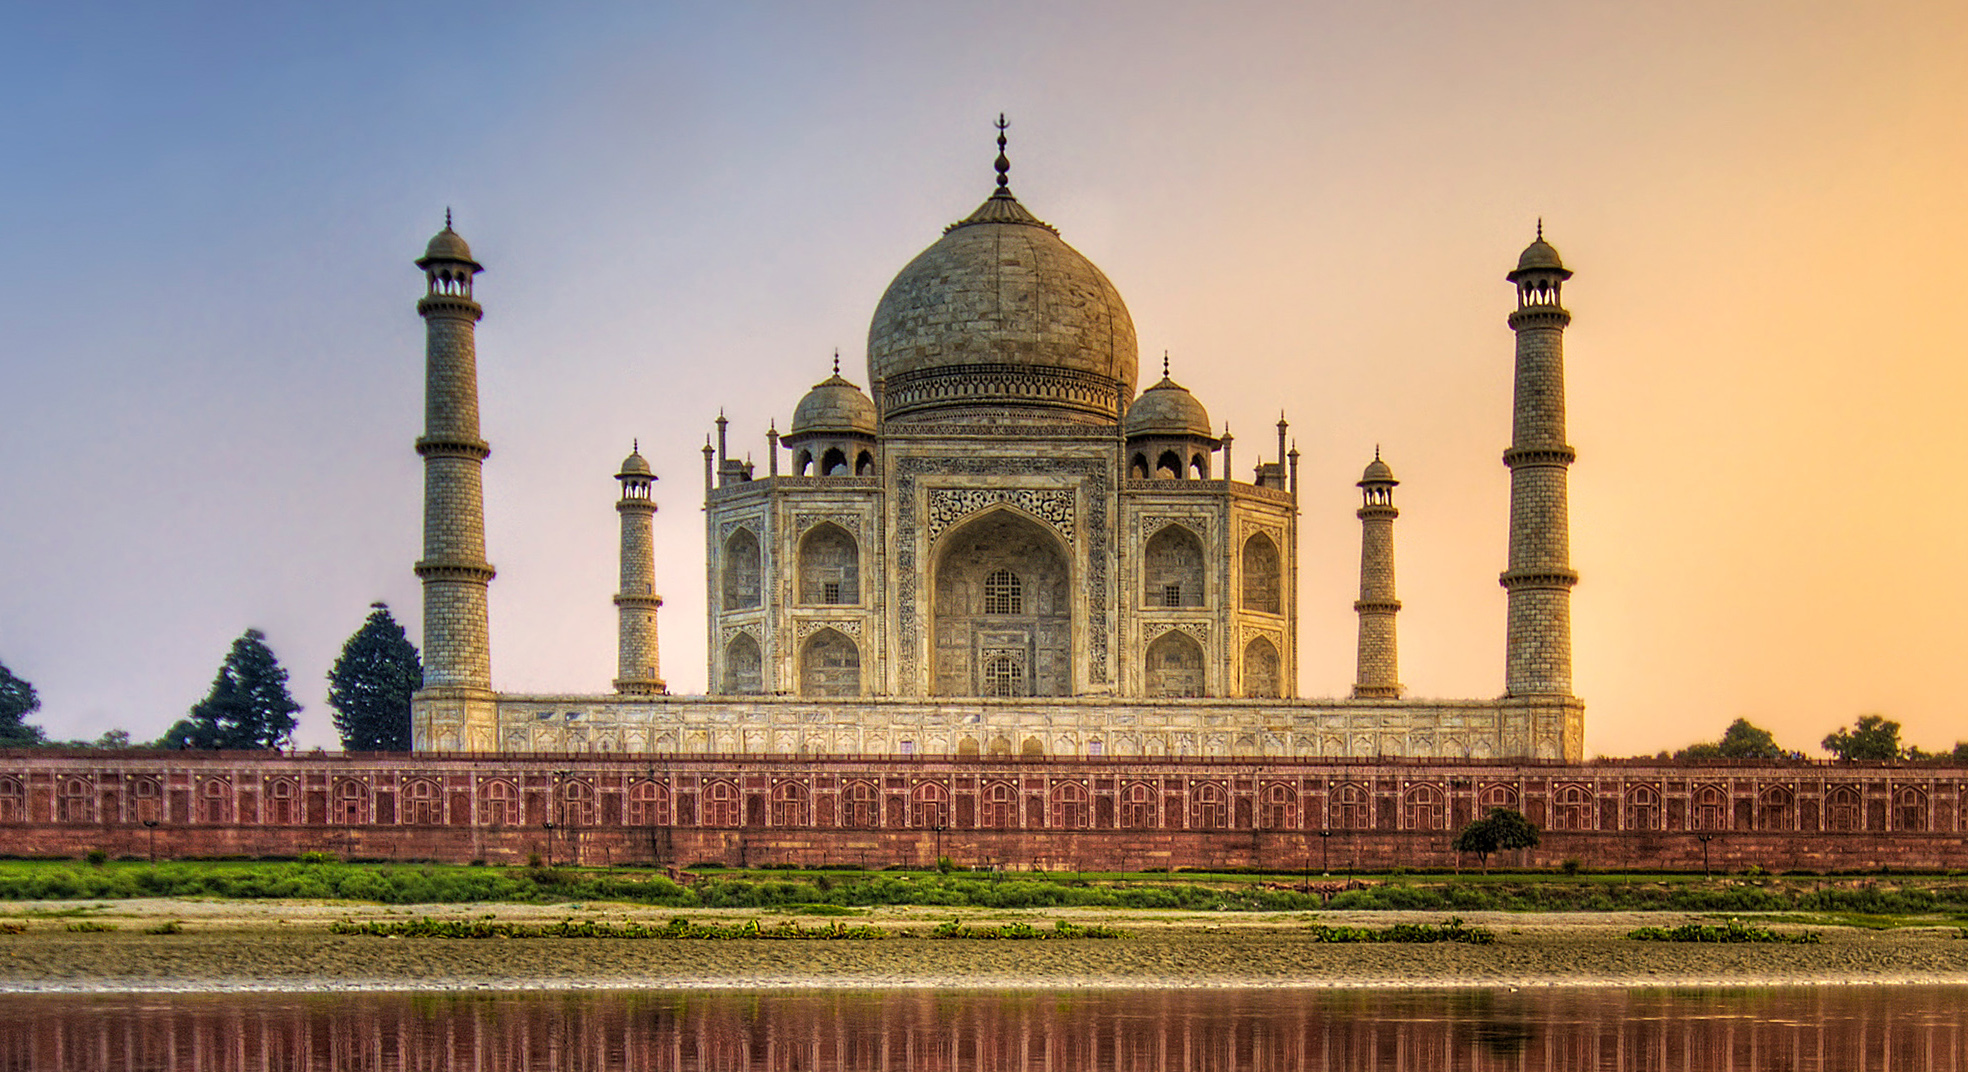 Taj Mahal Amazing Building With Great Facts On This Planet